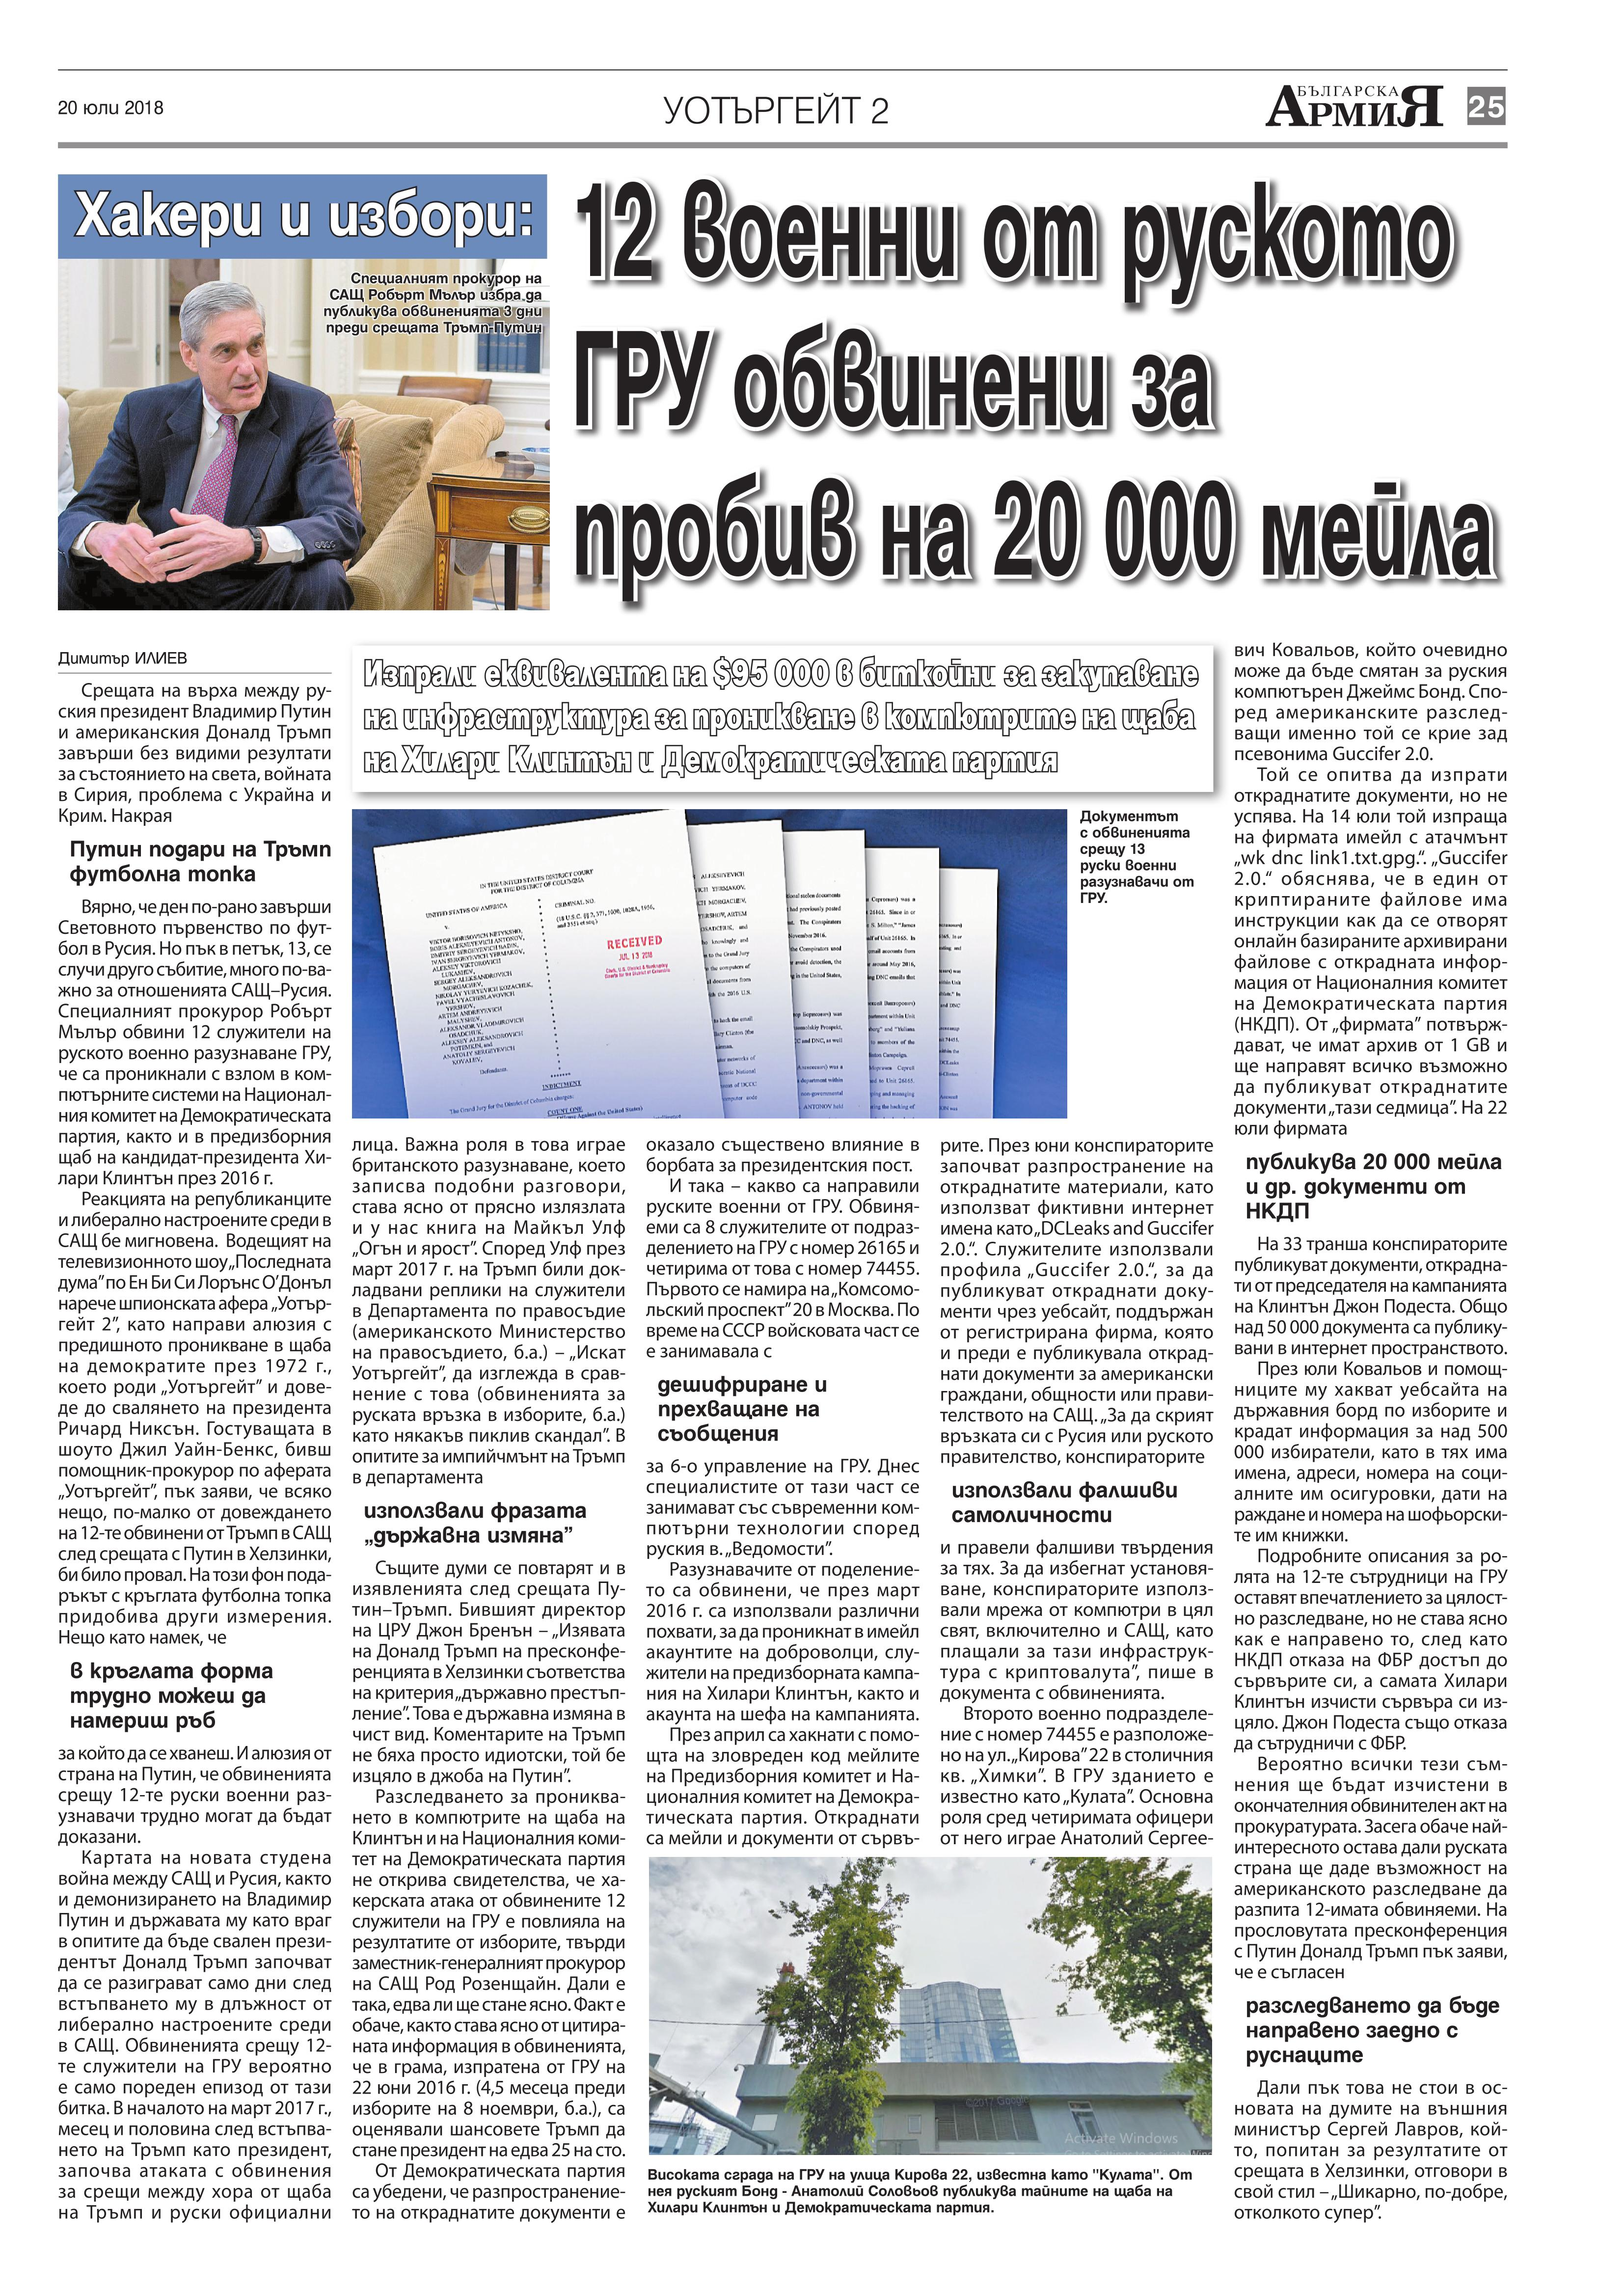 http://armymedia.bg/wp-content/uploads/2015/06/25.page1_-52.jpg